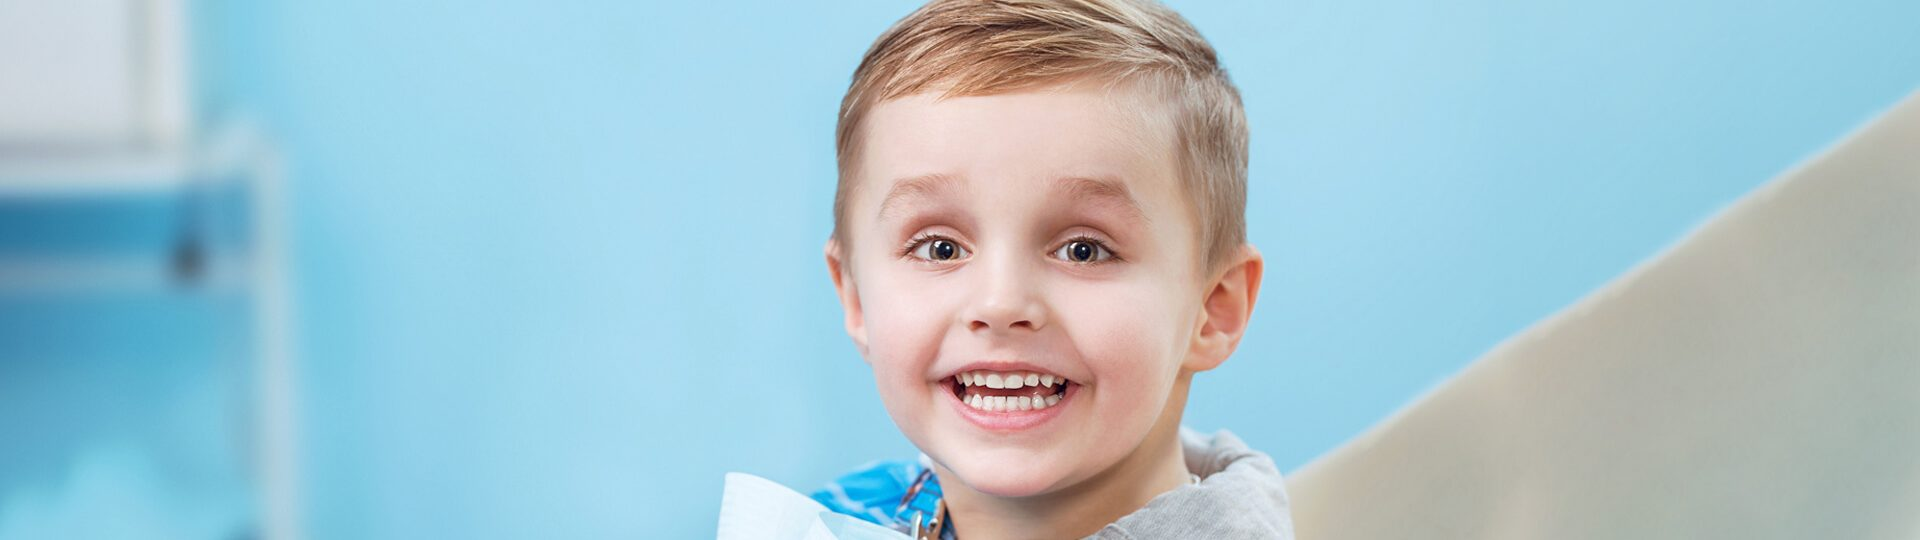 Pediatric Dentistry 101: Everything You Should Know